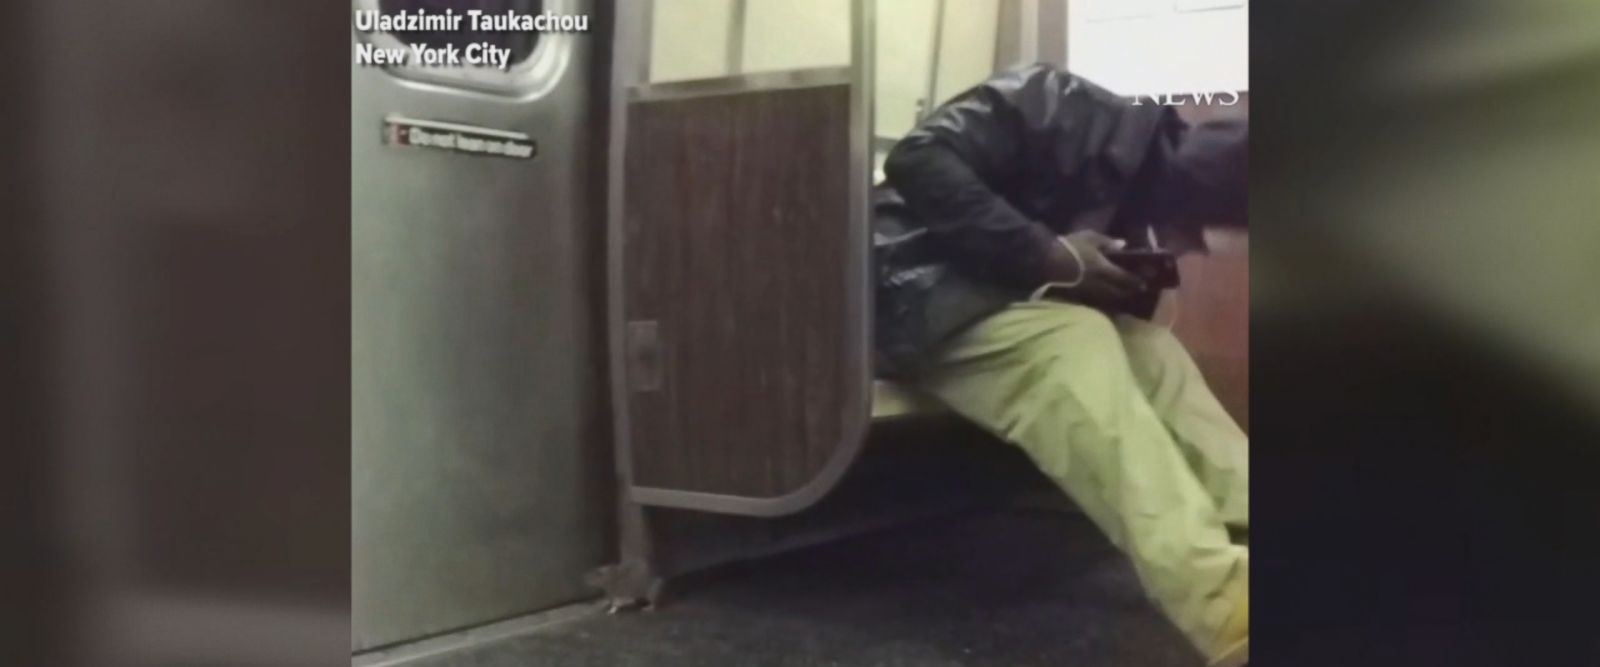 The rodent caused quite a commotion when it got trapped inside a subway car.